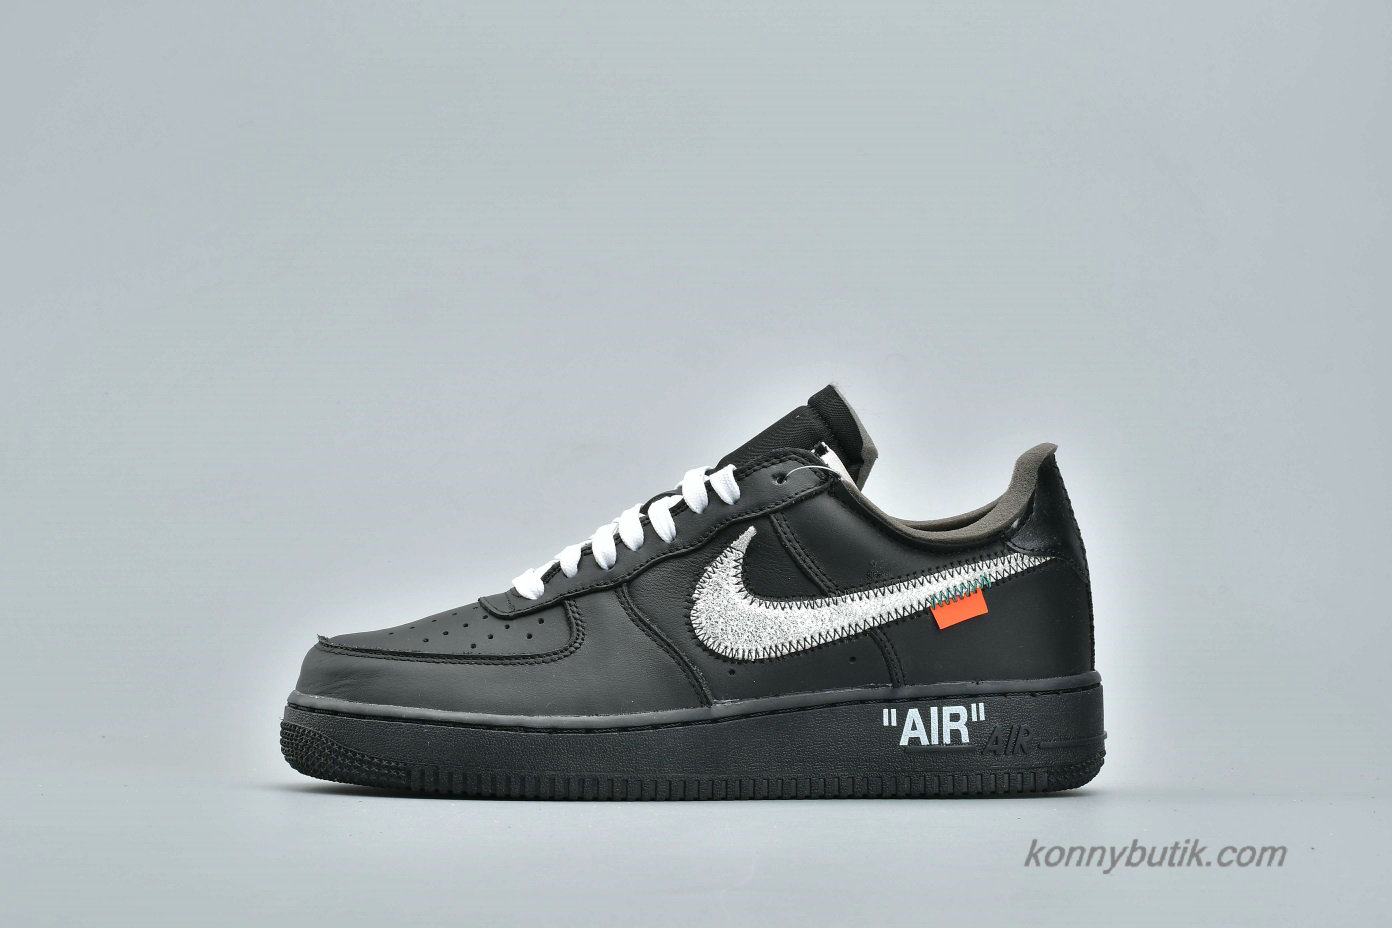 Off-White Nike Air Force 1 Low 07 VIRGIL x MOMA Unisex Sko Sort (AV5210-001)